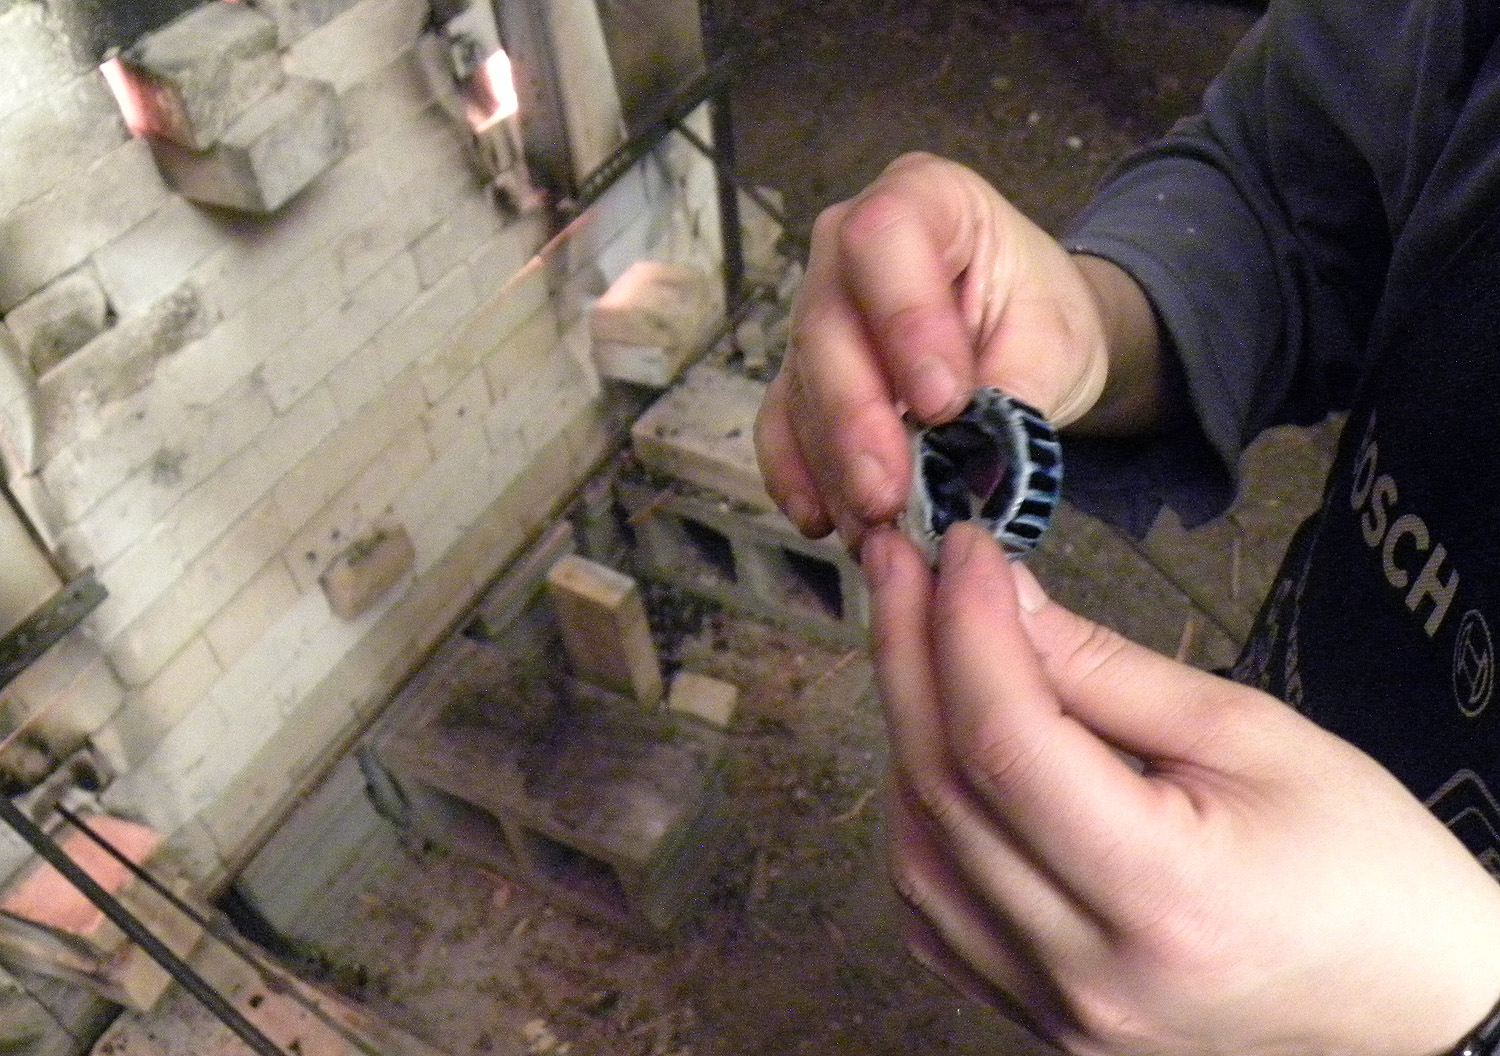 Checking the salt glaze on the ring